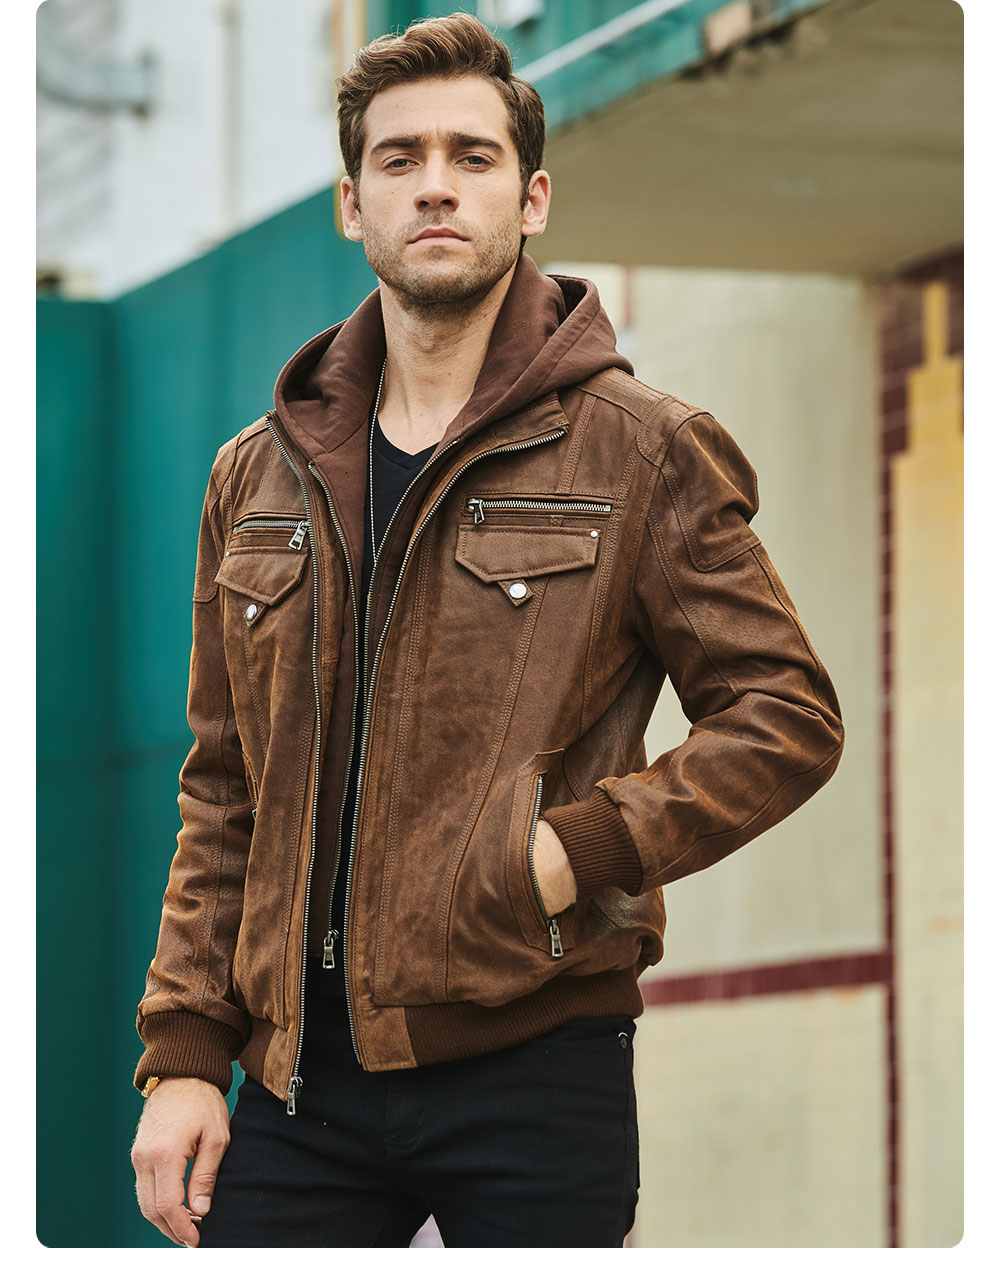 H3f32ba73be9343a9a164c75988e8ad8dv FLAVOR New Men's Real Leather Jacket with Removable Hood Brown Jacket Genuine Leather Warm Coat For Men